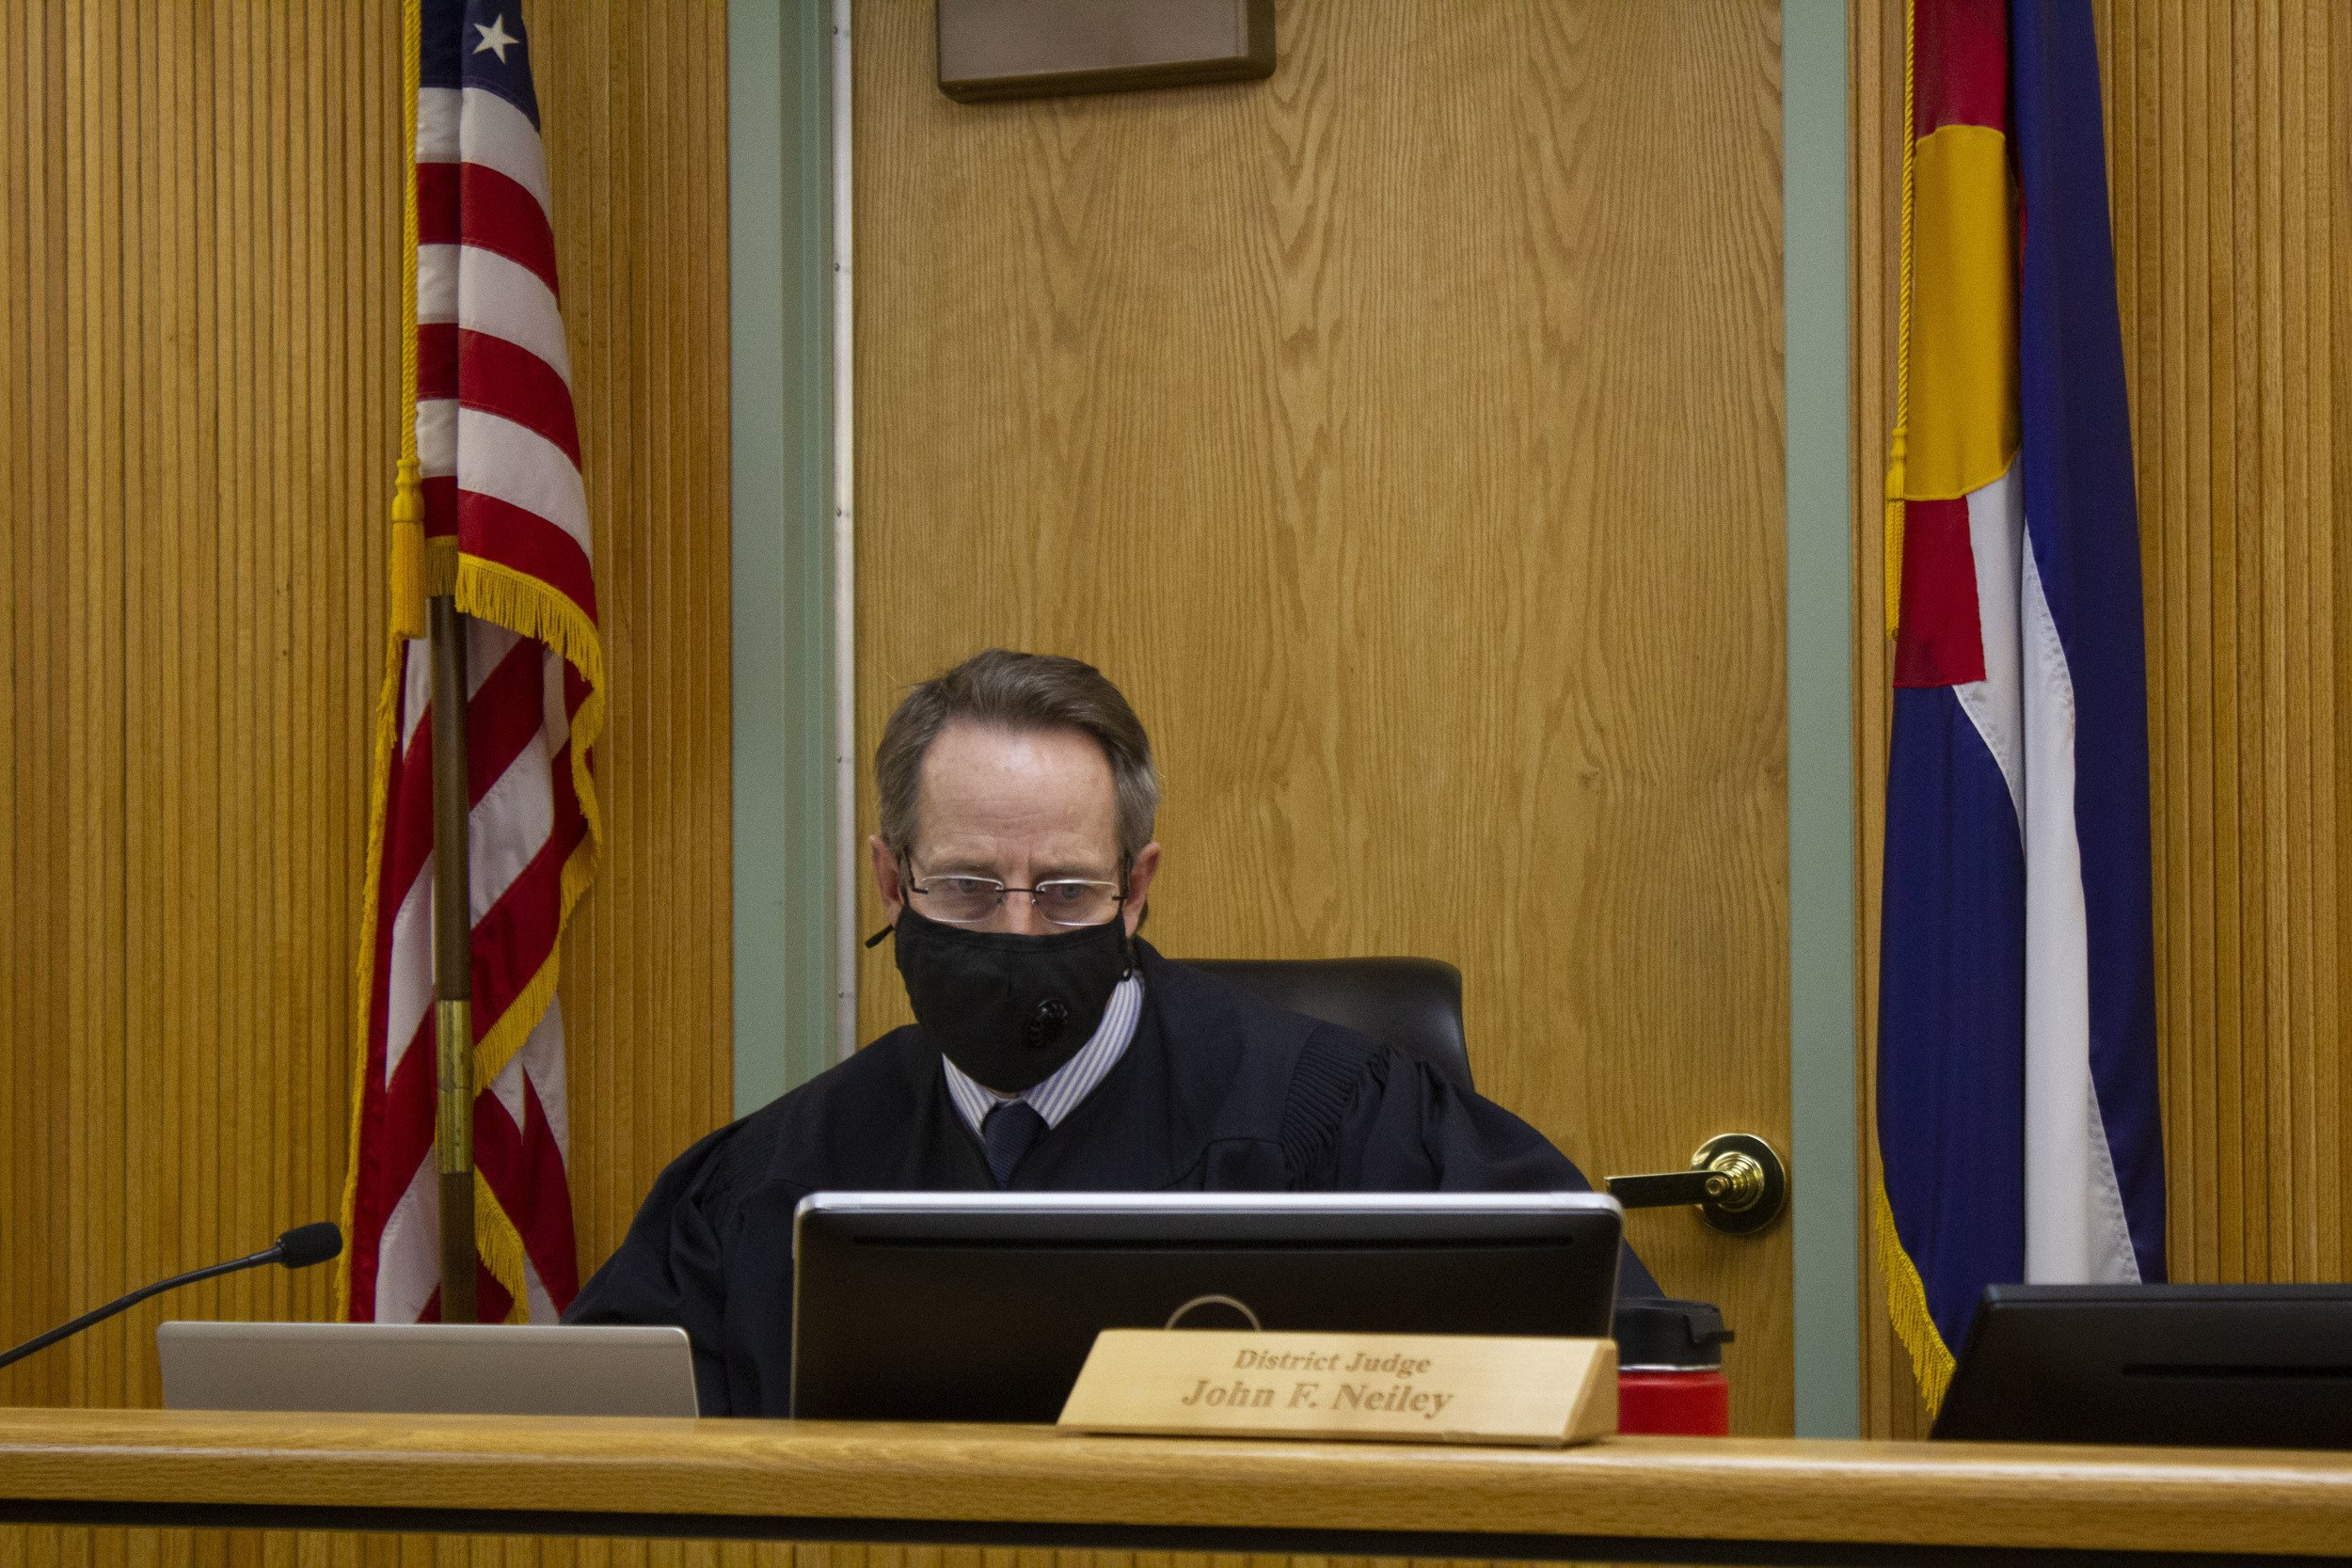 Ninth Judicial District Court Judge John Neiley prepares for yet another virtual hearing. Photo by James Steindler.